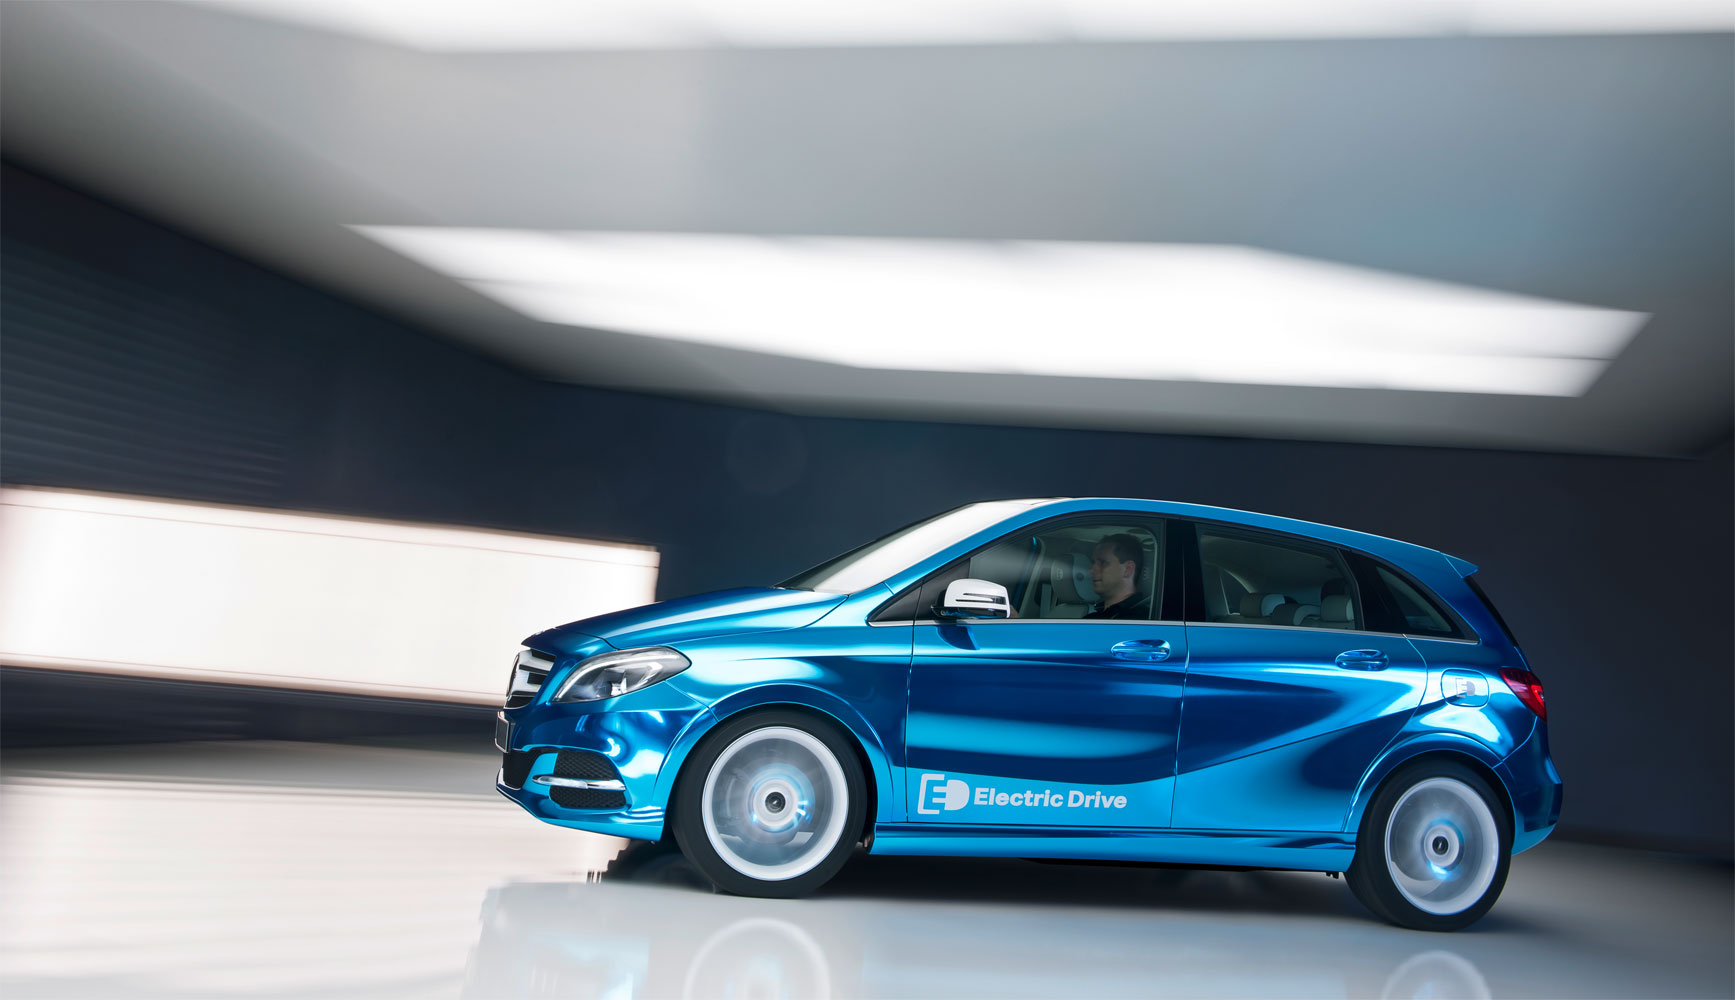 Mercedes Concept B-Klasse Electric Drive auf Autosalon Paris